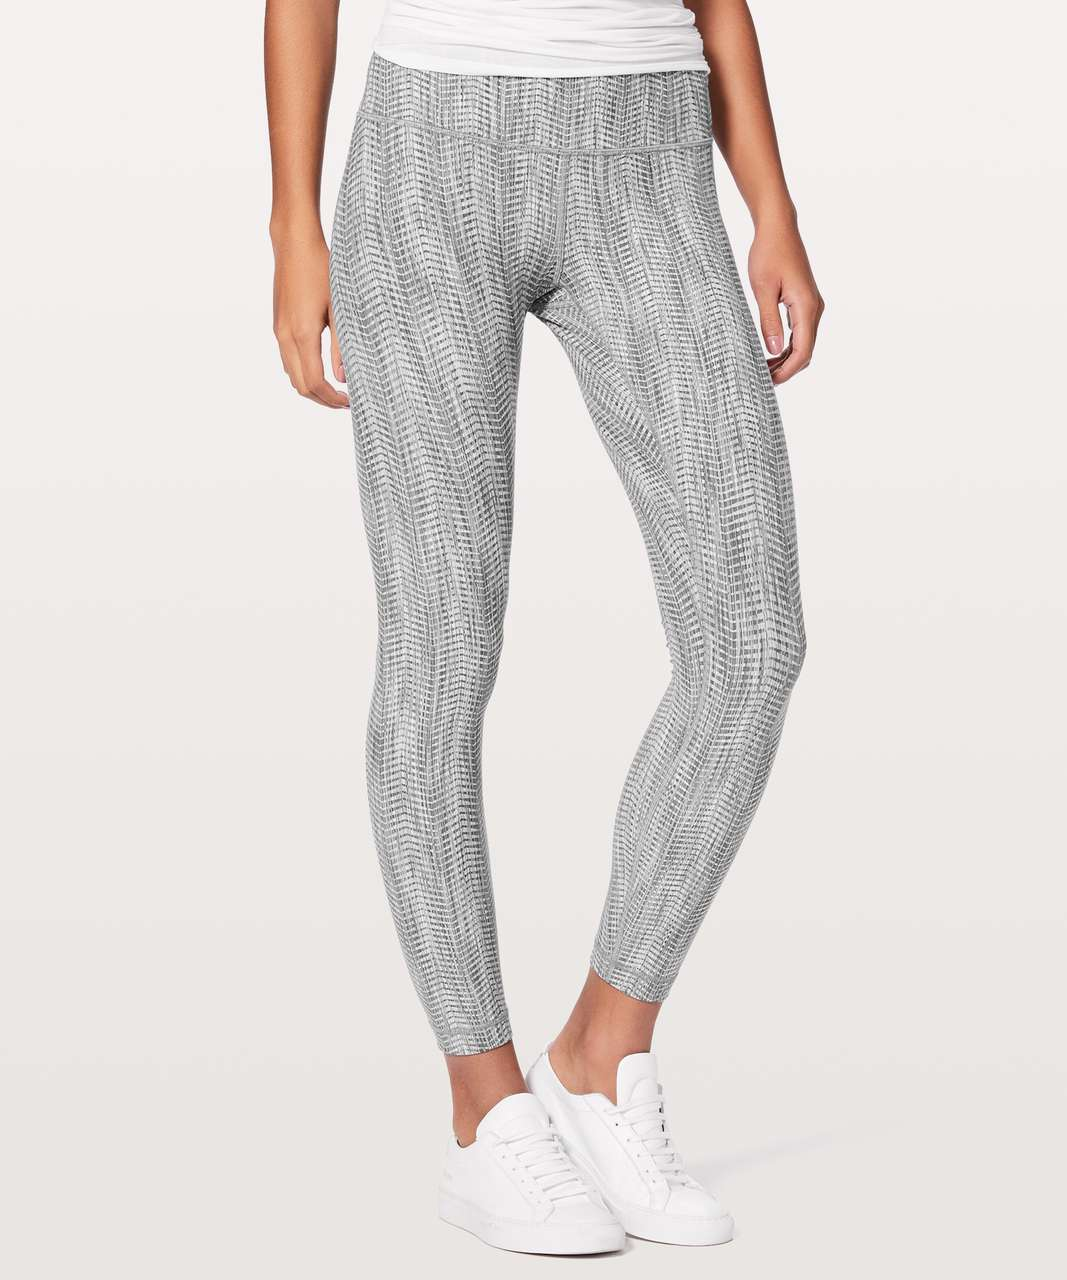 "Lululemon Wunder Under Hi-Rise 7/8 Tight *Luxtreme 25"" - Power Luxtreme Arrow Jacquard Battleship Silver Spoon"